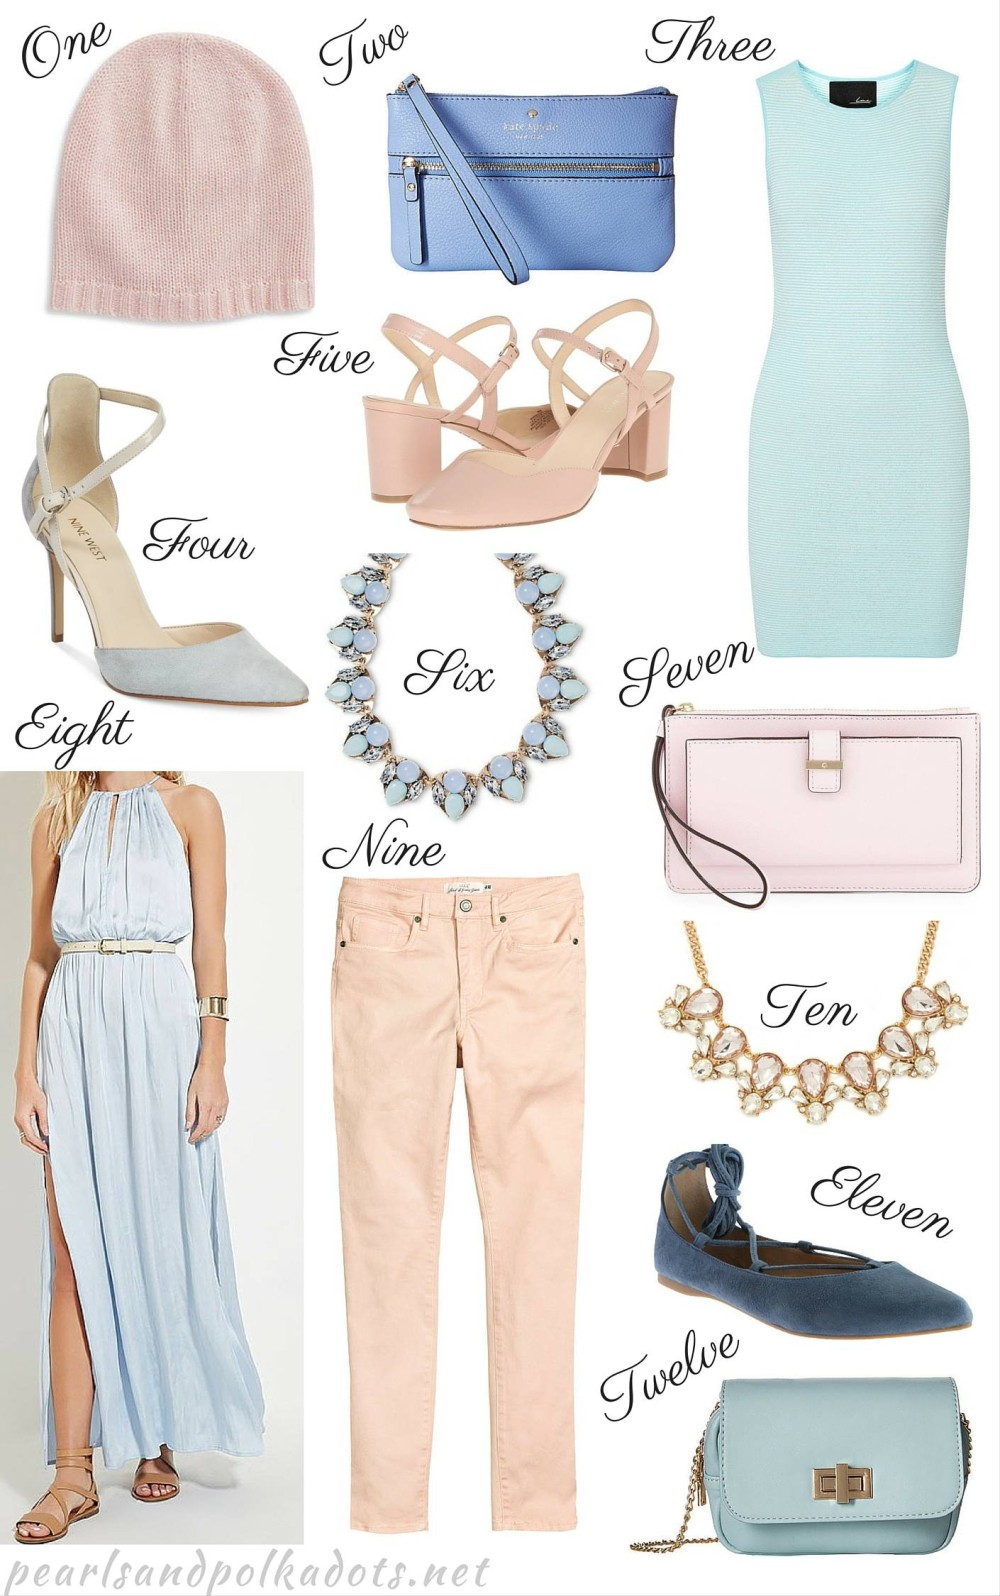 12 Pantone Coloured Items Under $100 - Pearls and Polkadots